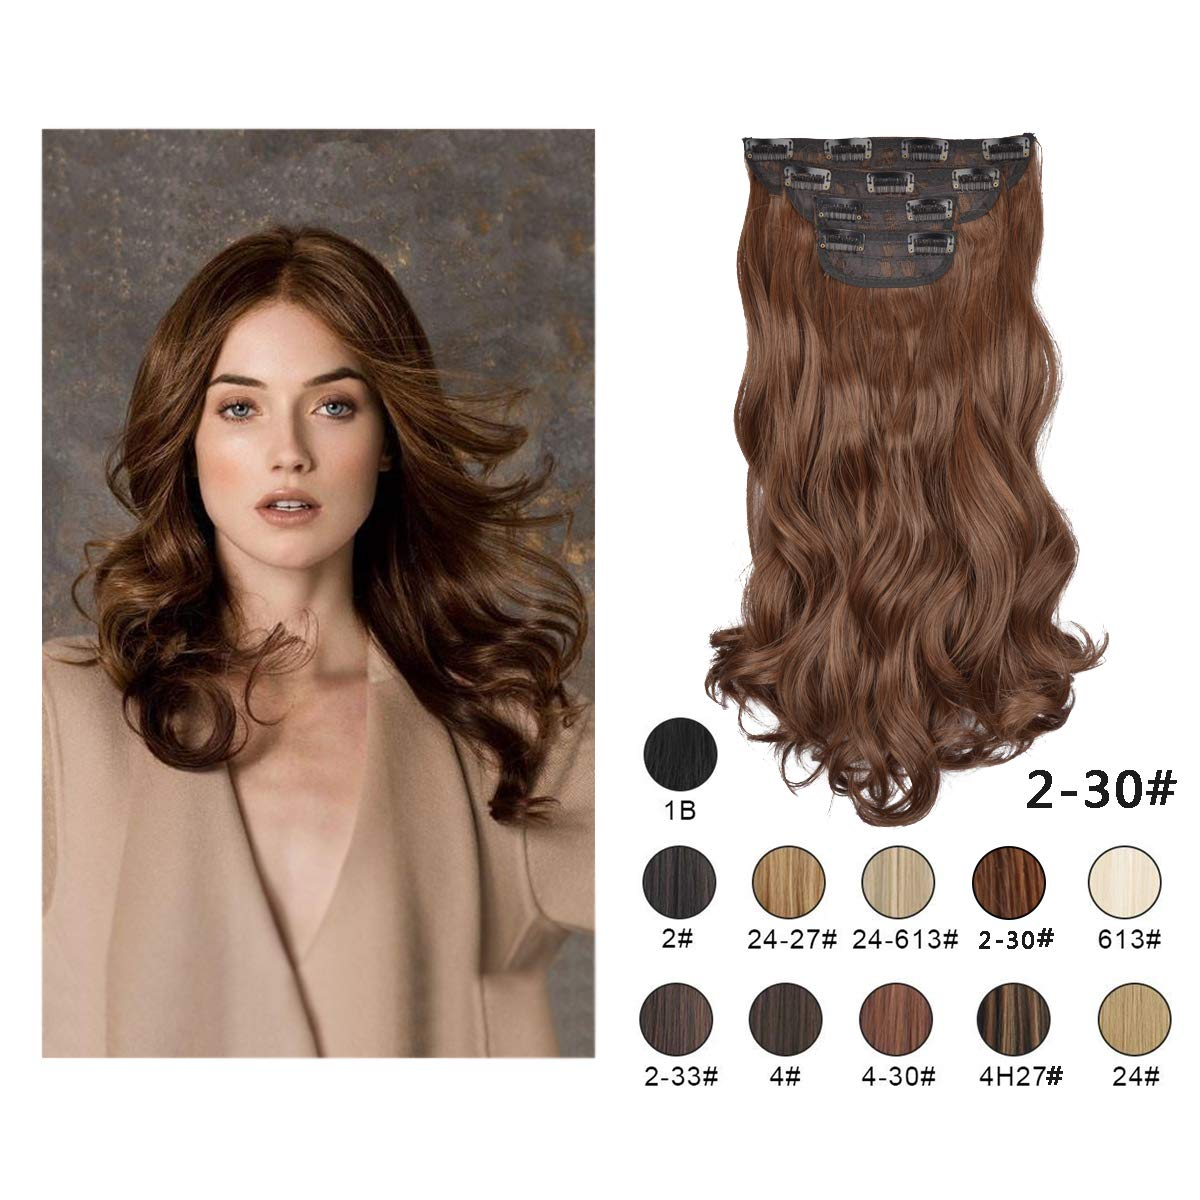 Barsdar 20'' Clips in Hair Extensions 4P11C Wavy Curly Hairpiece For Women lady Synthetic Heat Fiber Hair Extension (2/30#)